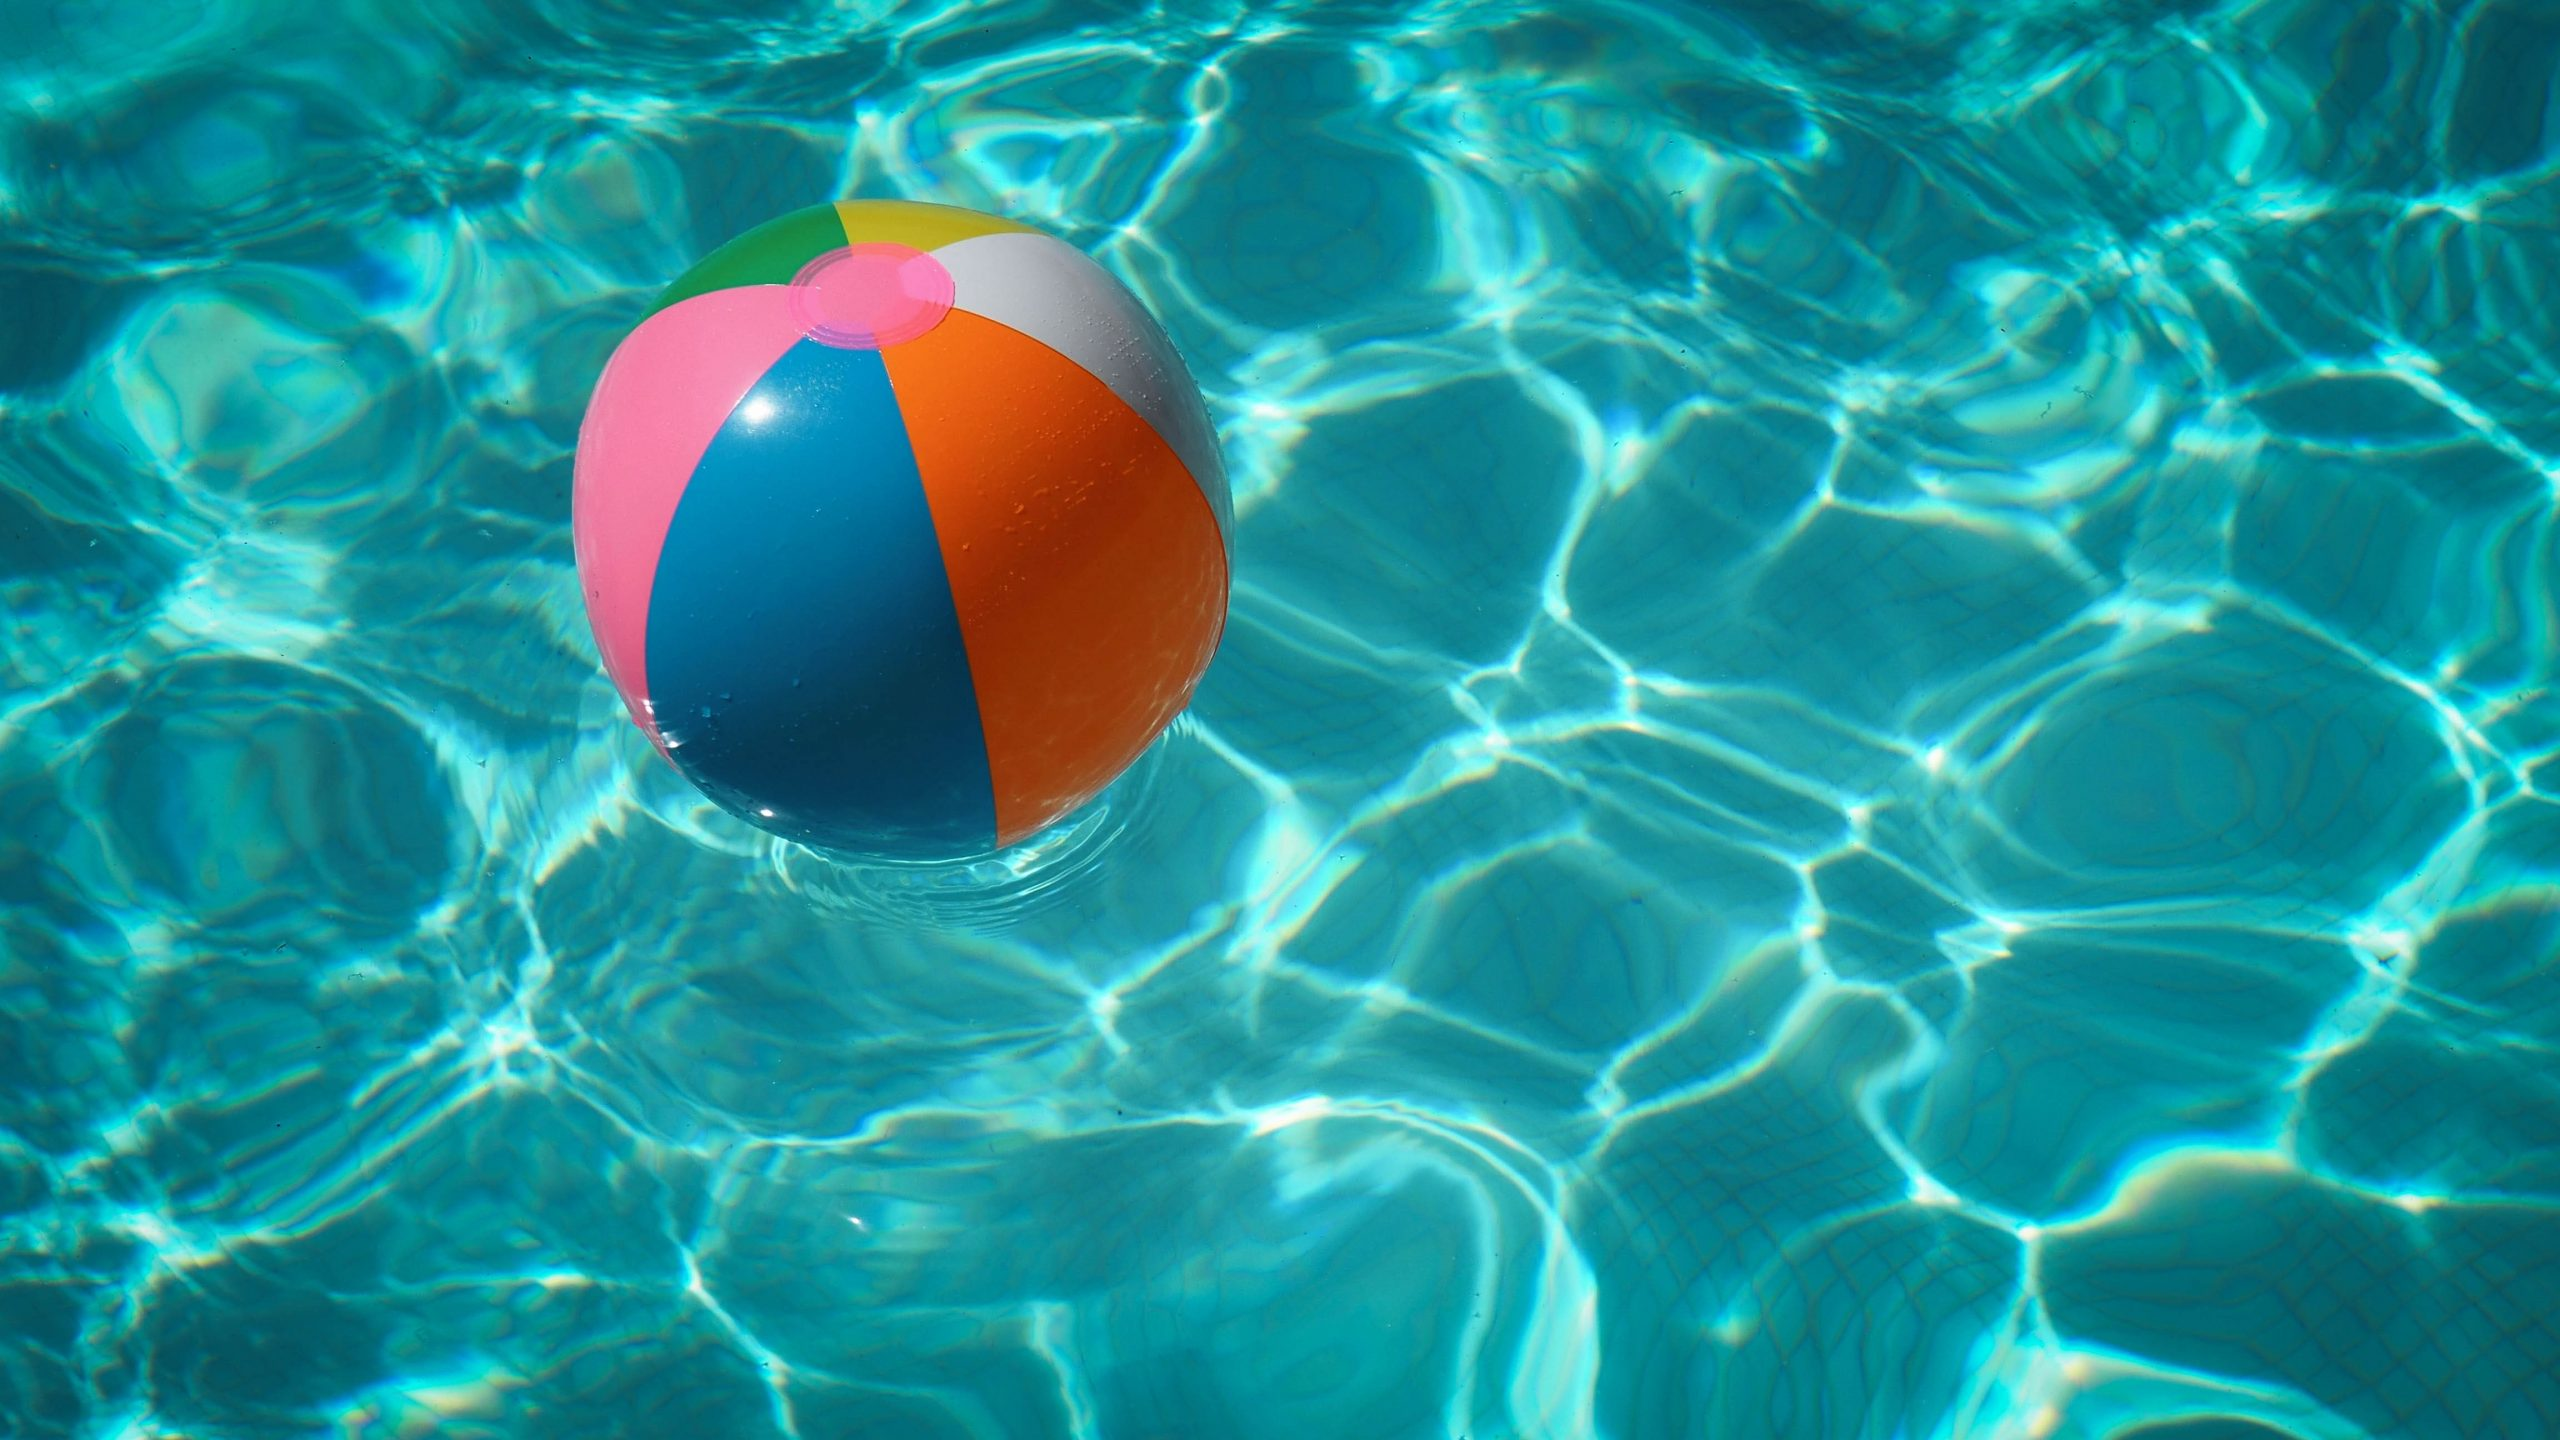 A multi-colored beach ball float in a pool